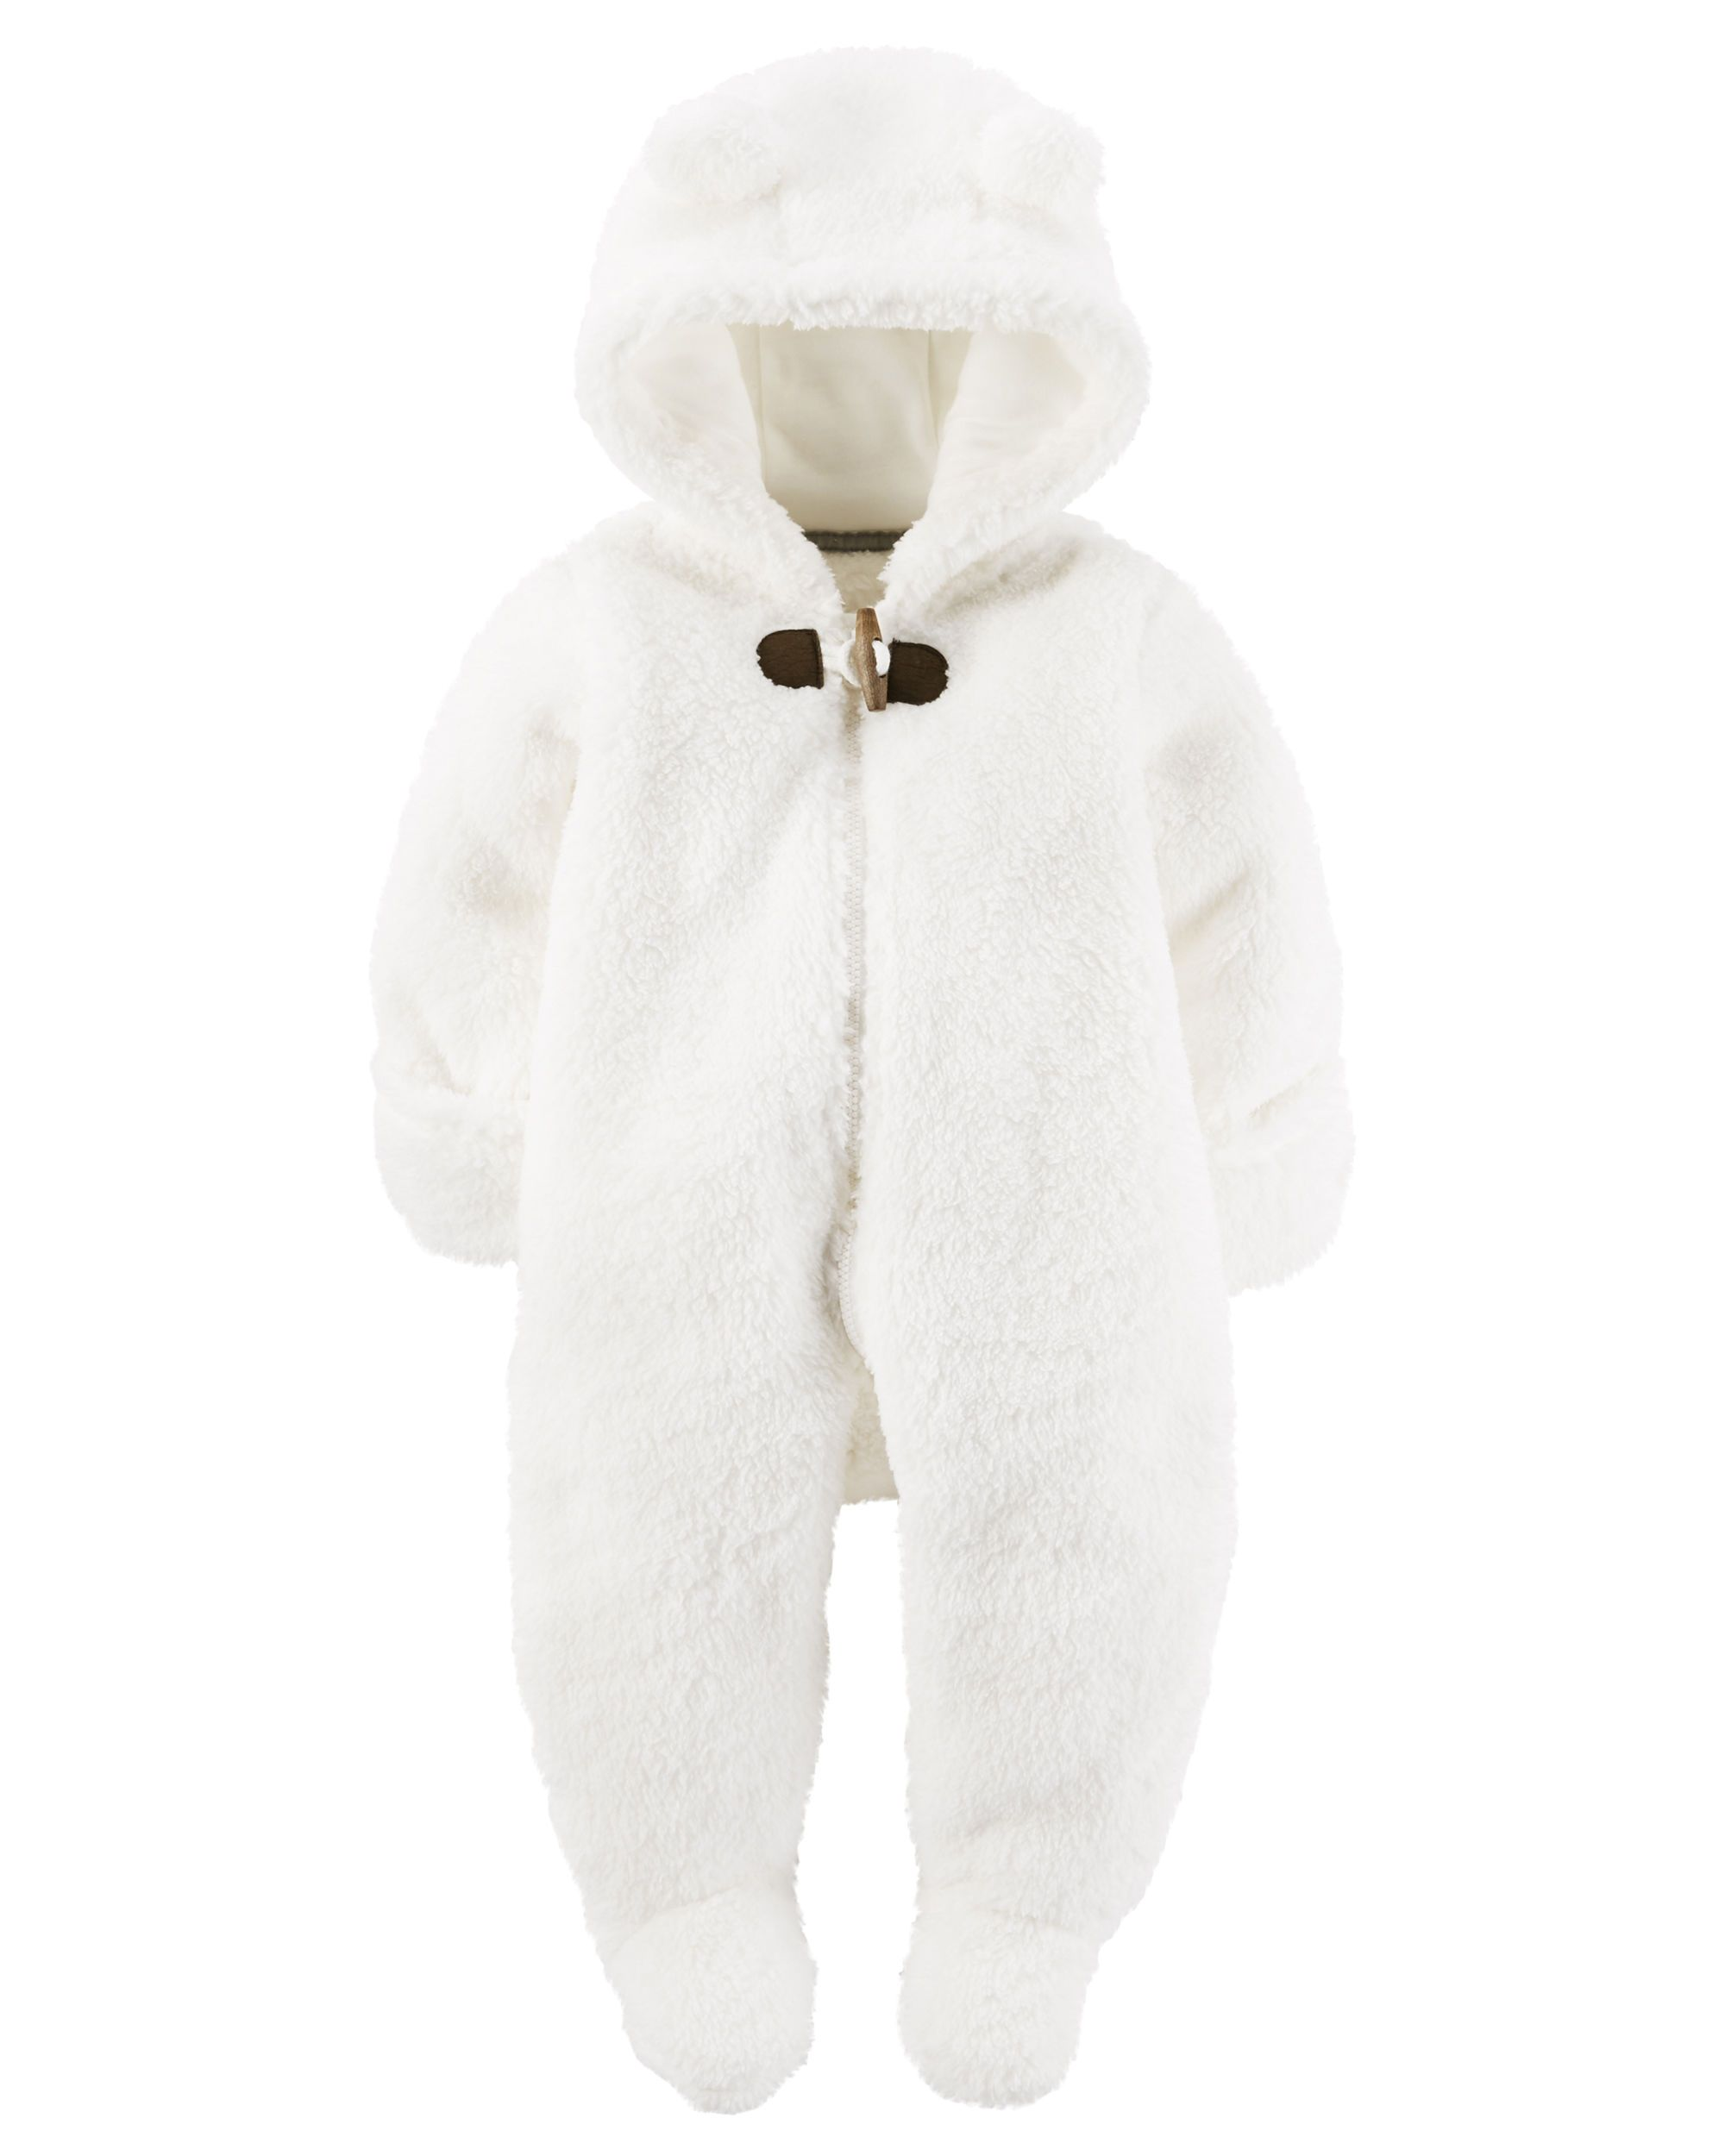 19b97b52d Hooded Sherpa Bunting from Carters.com. Shop clothing & accessories from a  trusted name in kids, toddlers, and baby clothes.